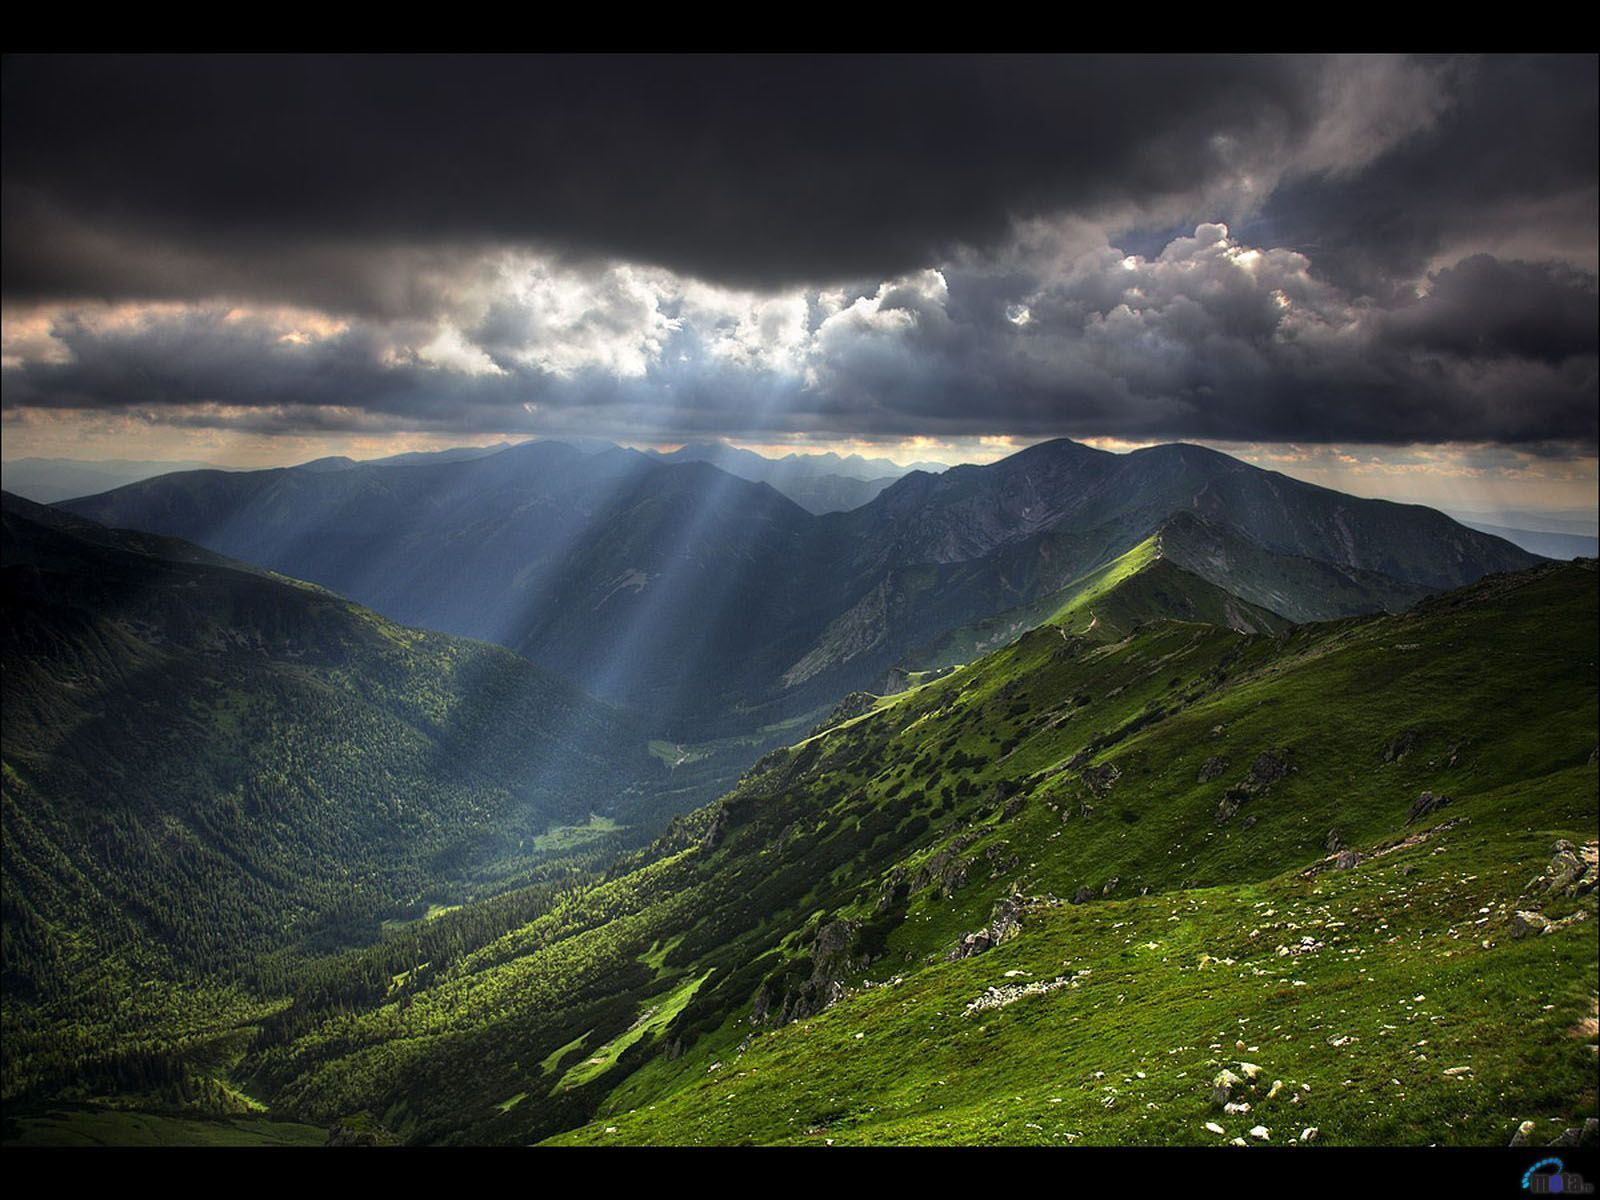 20434 download wallpaper Landscape, Mountains, Sun, Clouds screensavers and pictures for free